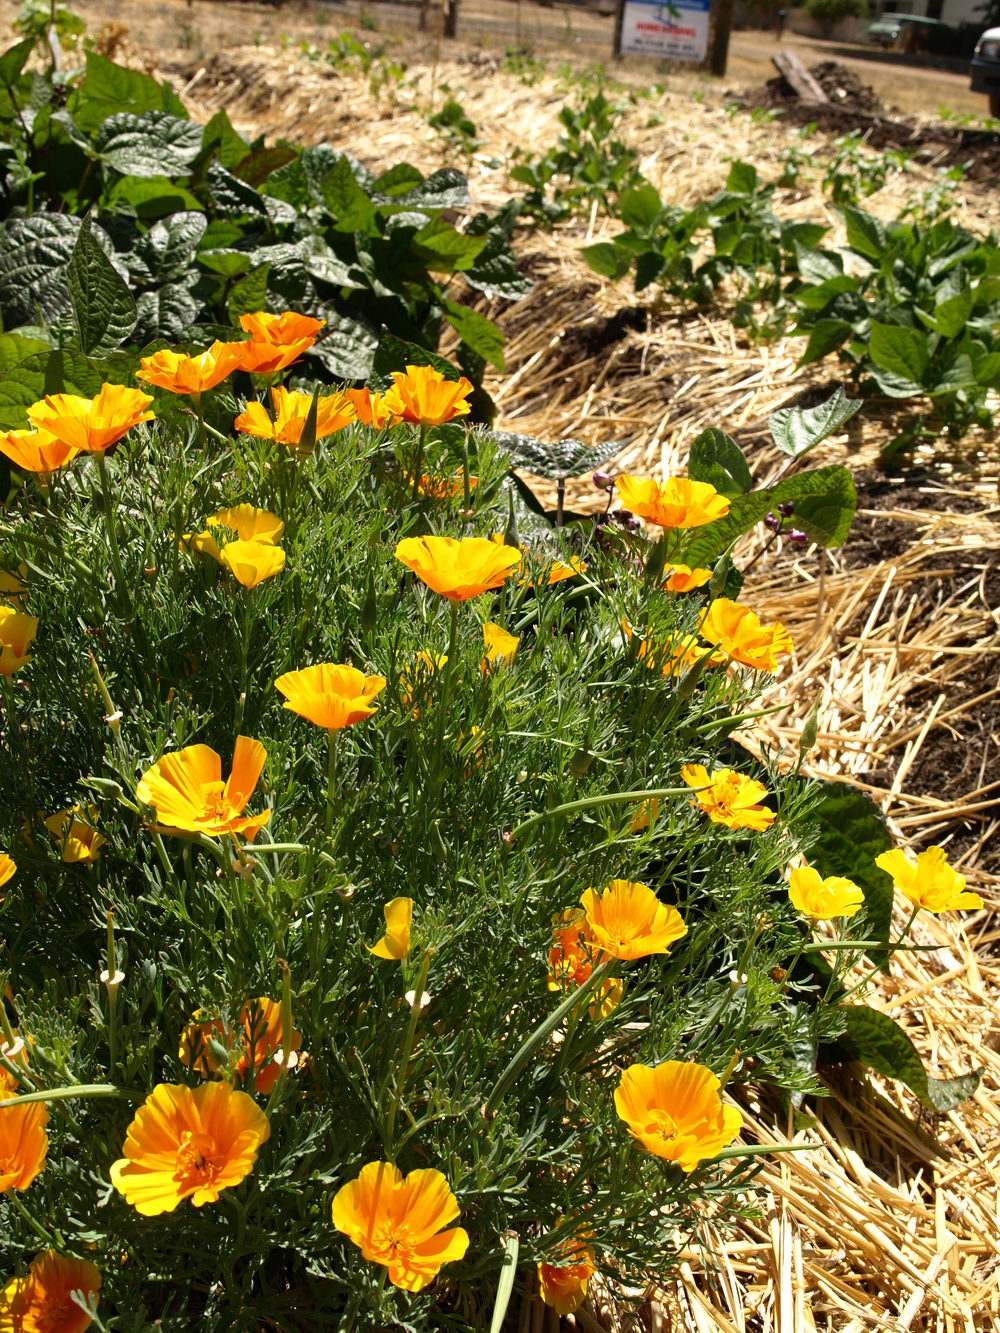 and these poppies